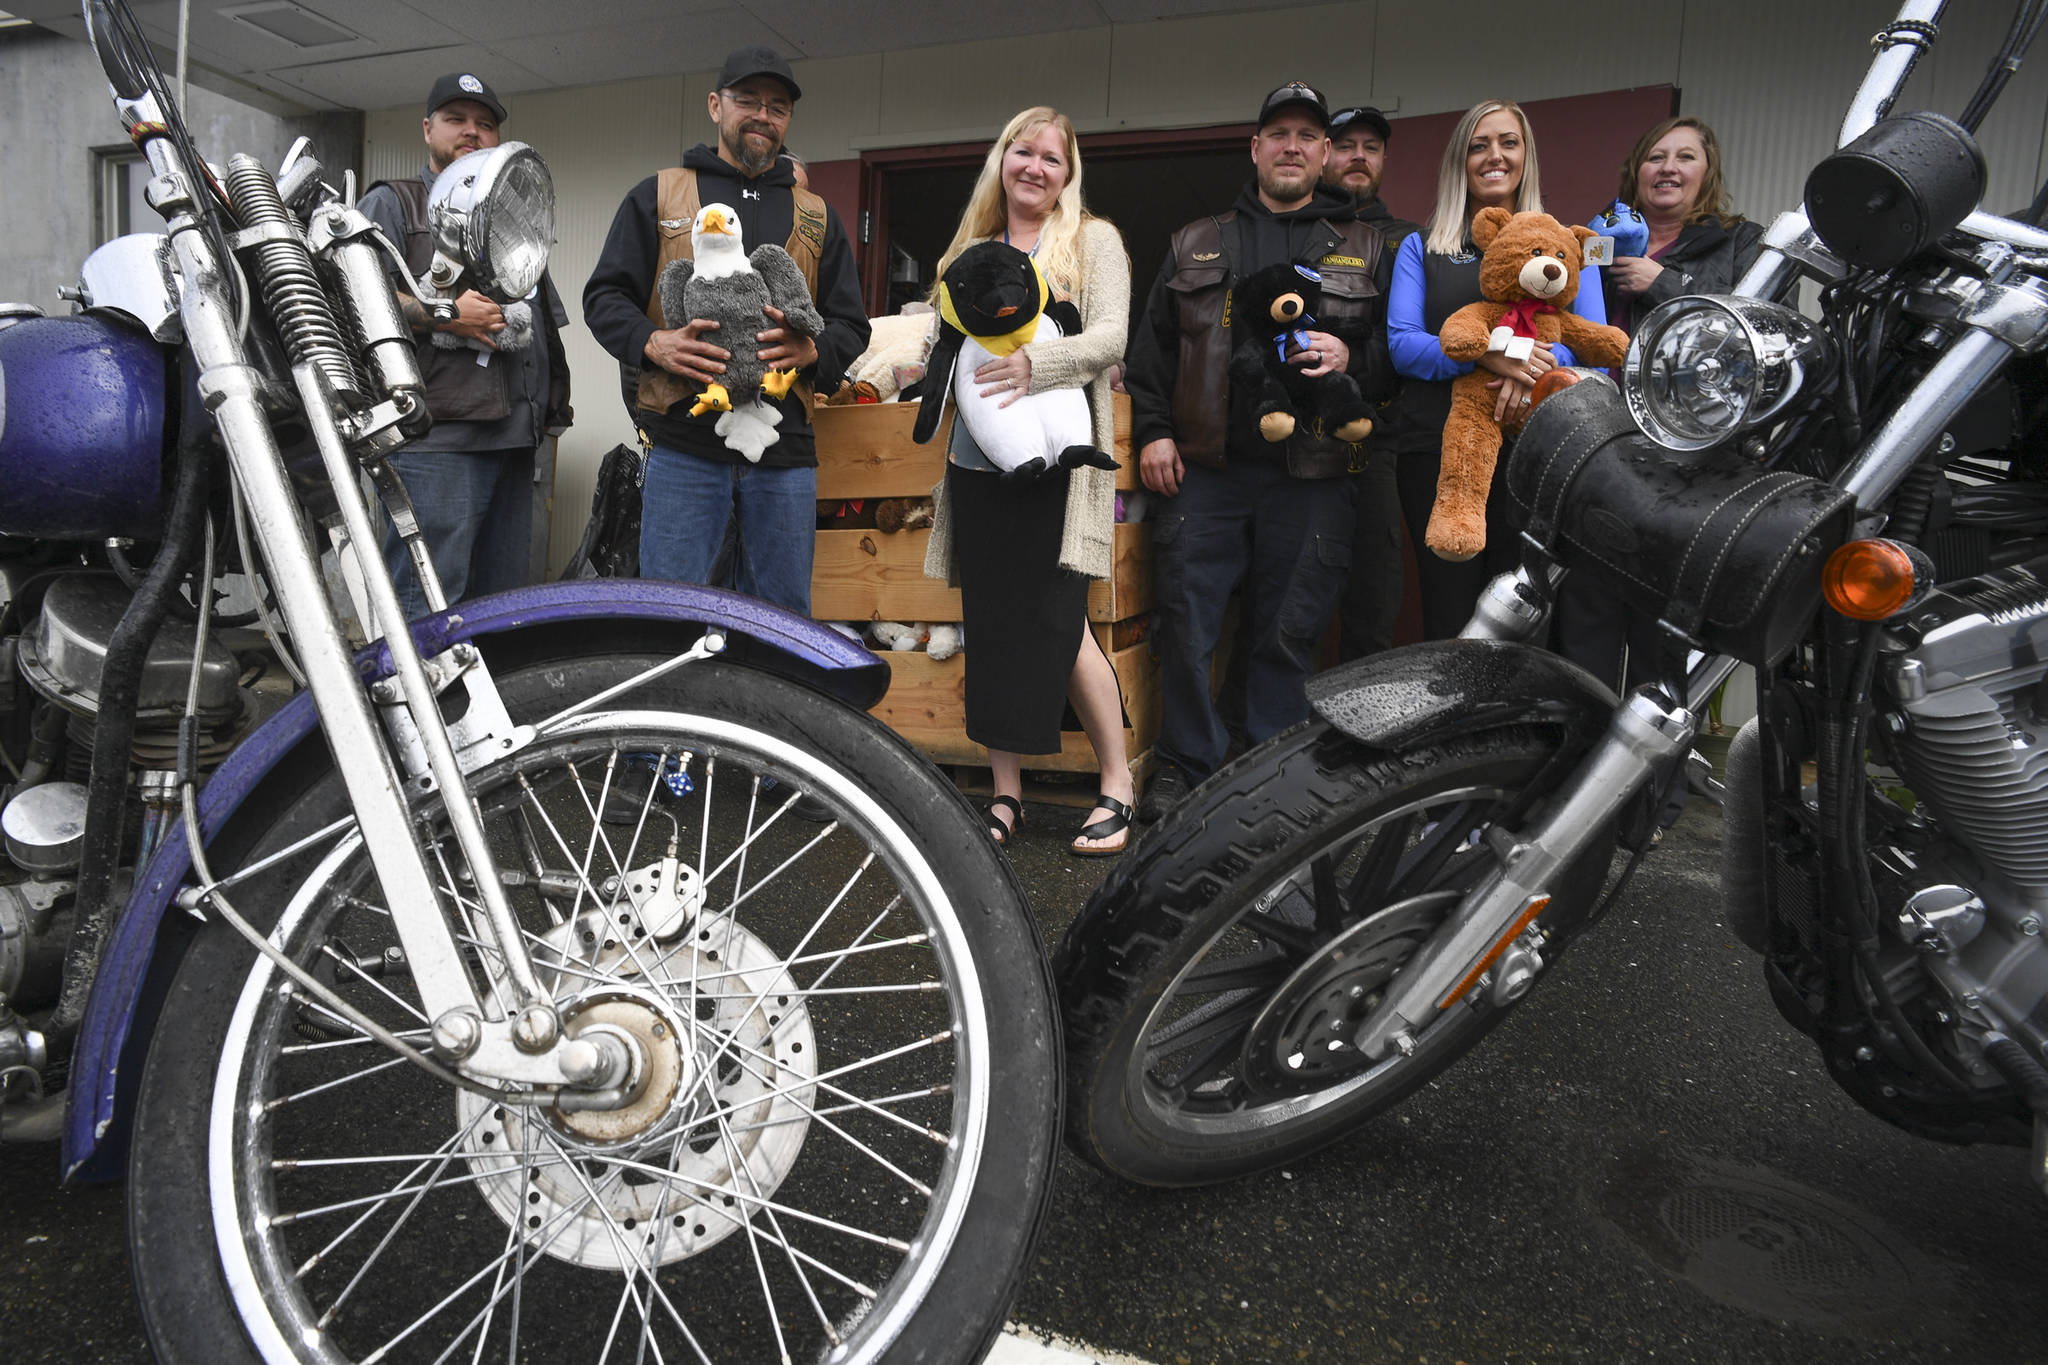 Members of the Panhandlers Motorcycle Club of Alaska pose with staff at Bartlett Regional Hospital on Tuesday, Sept. 3, 2019, with toys collected during the 25th Annual Toy Run for young patients and visitors to the hospital. (Michael Penn | Juneau Empire)